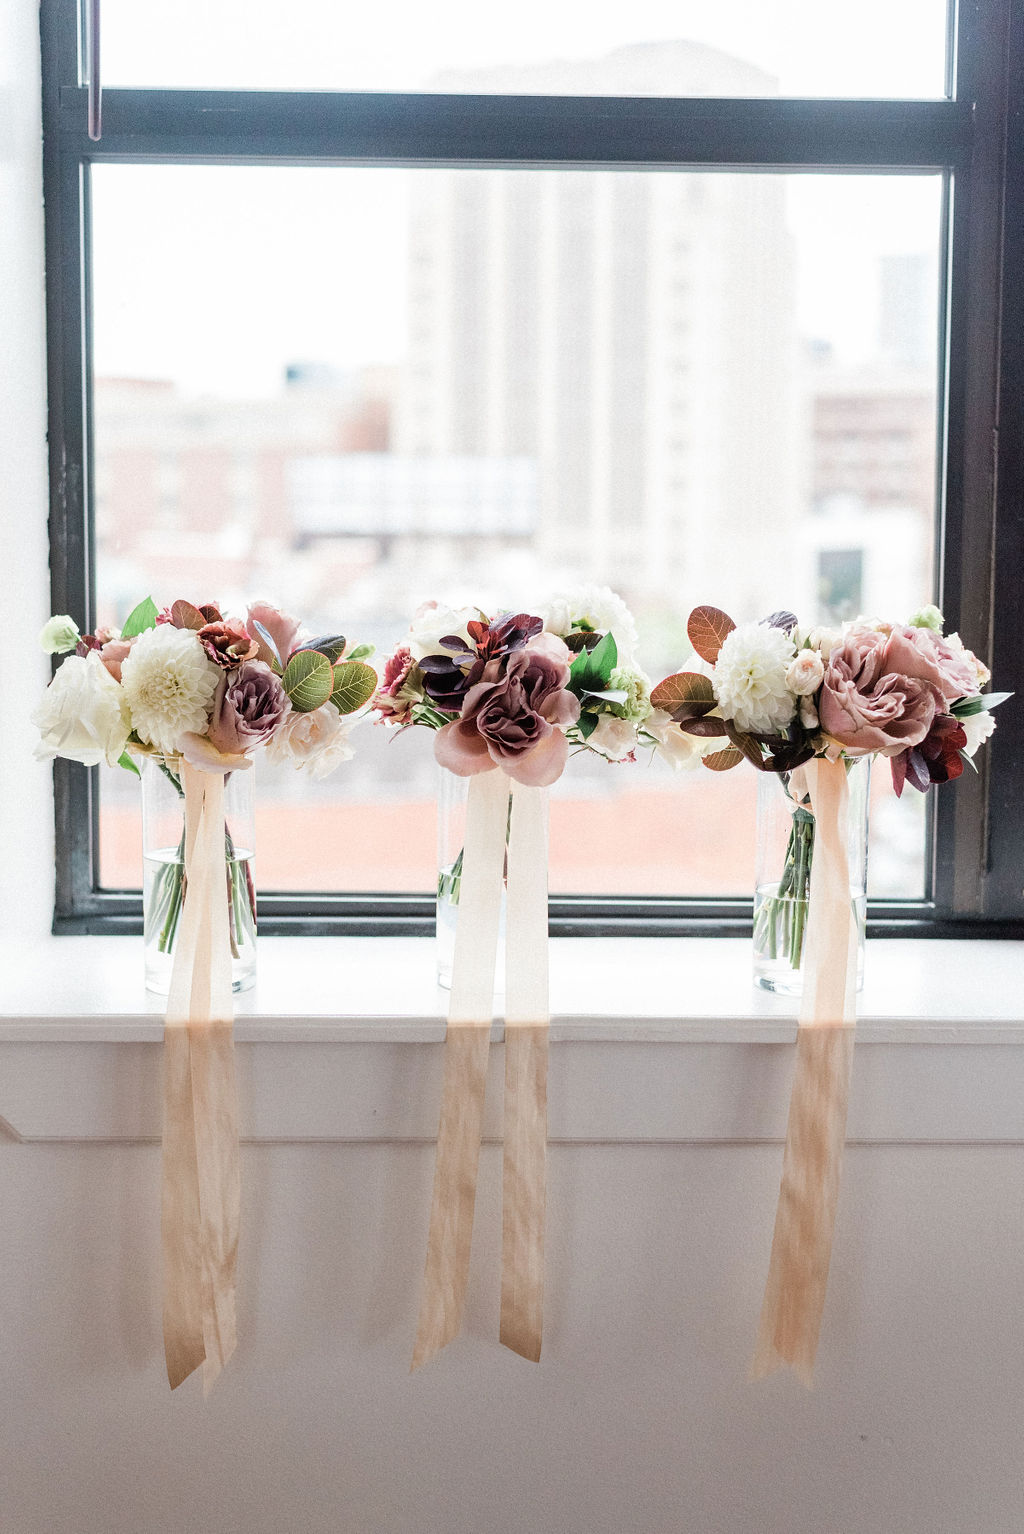 Bouquets sitting on a ledge